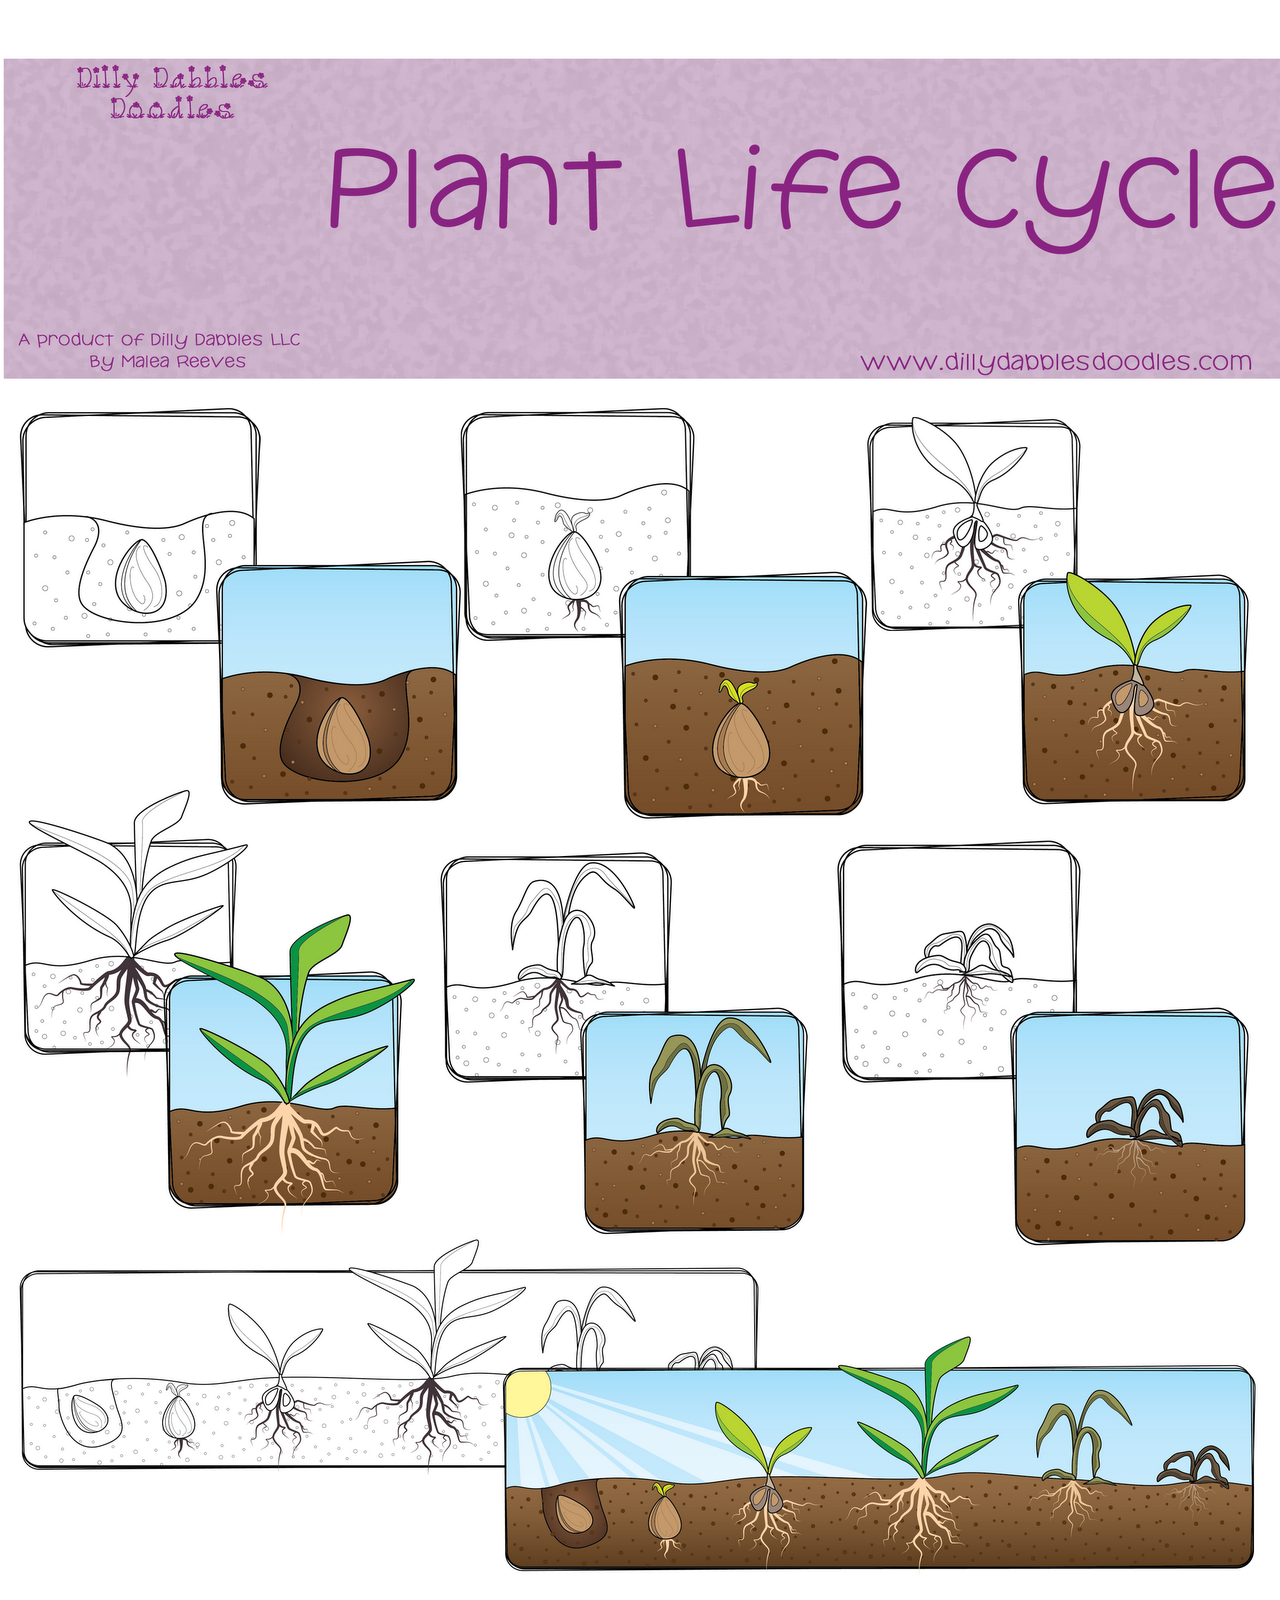 plant life cycle freebie science plants science classroom teaching science plant science. Black Bedroom Furniture Sets. Home Design Ideas